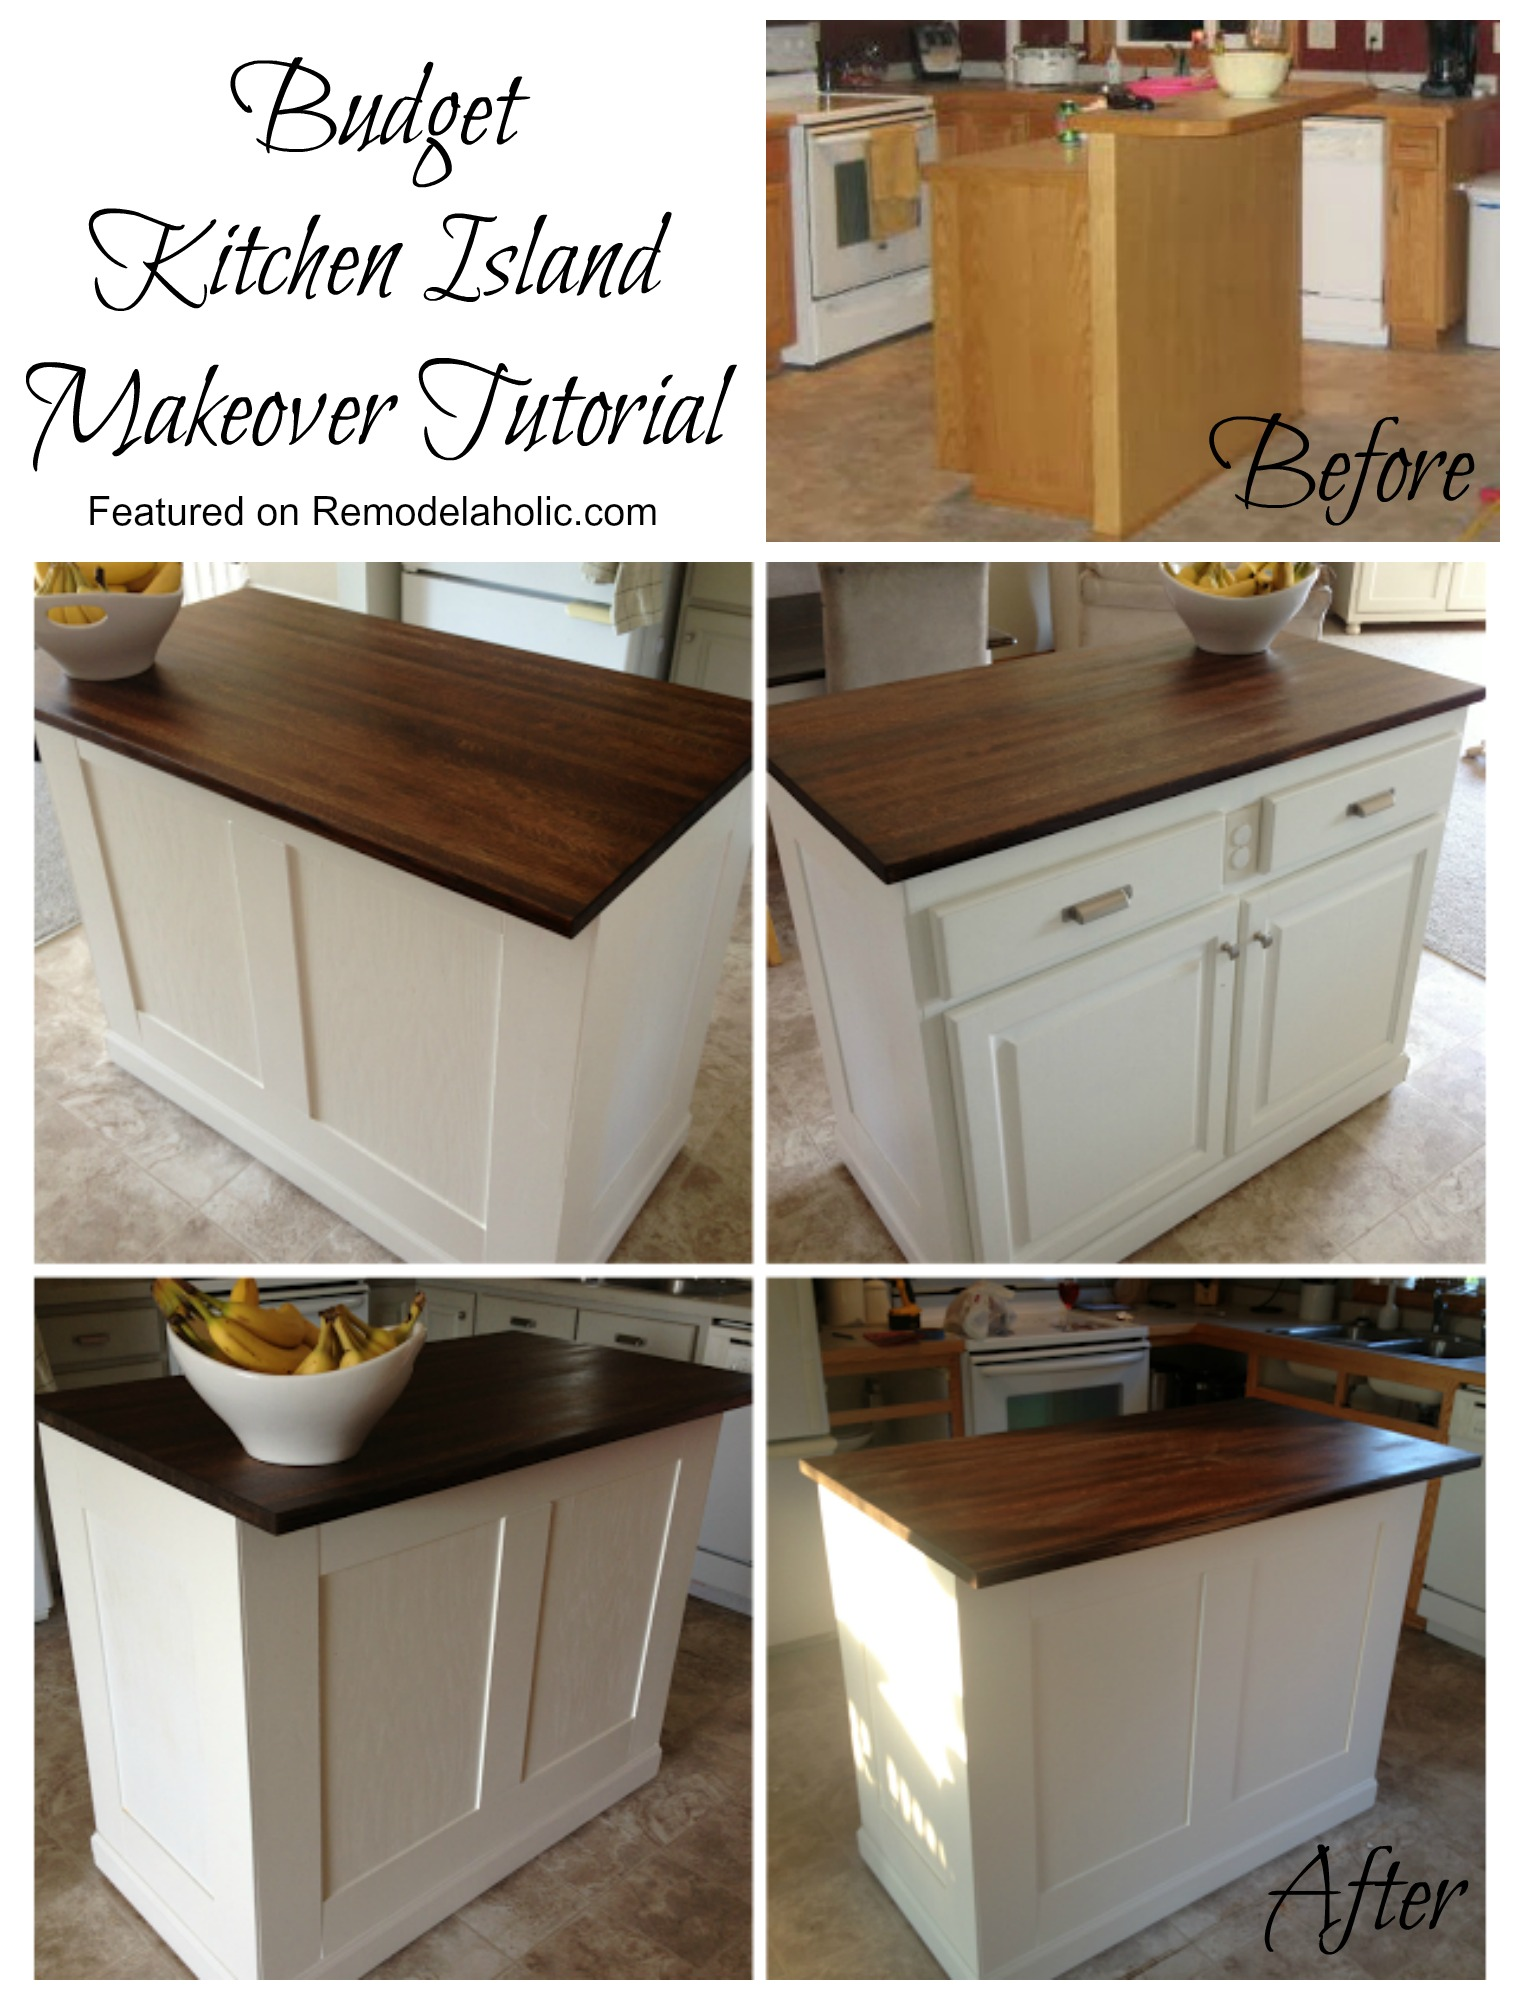 budget kitchen island makeover tutorial featured on remodelaholic remodelaholic   budget friendly board and batten kitchen island      rh   remodelaholic com